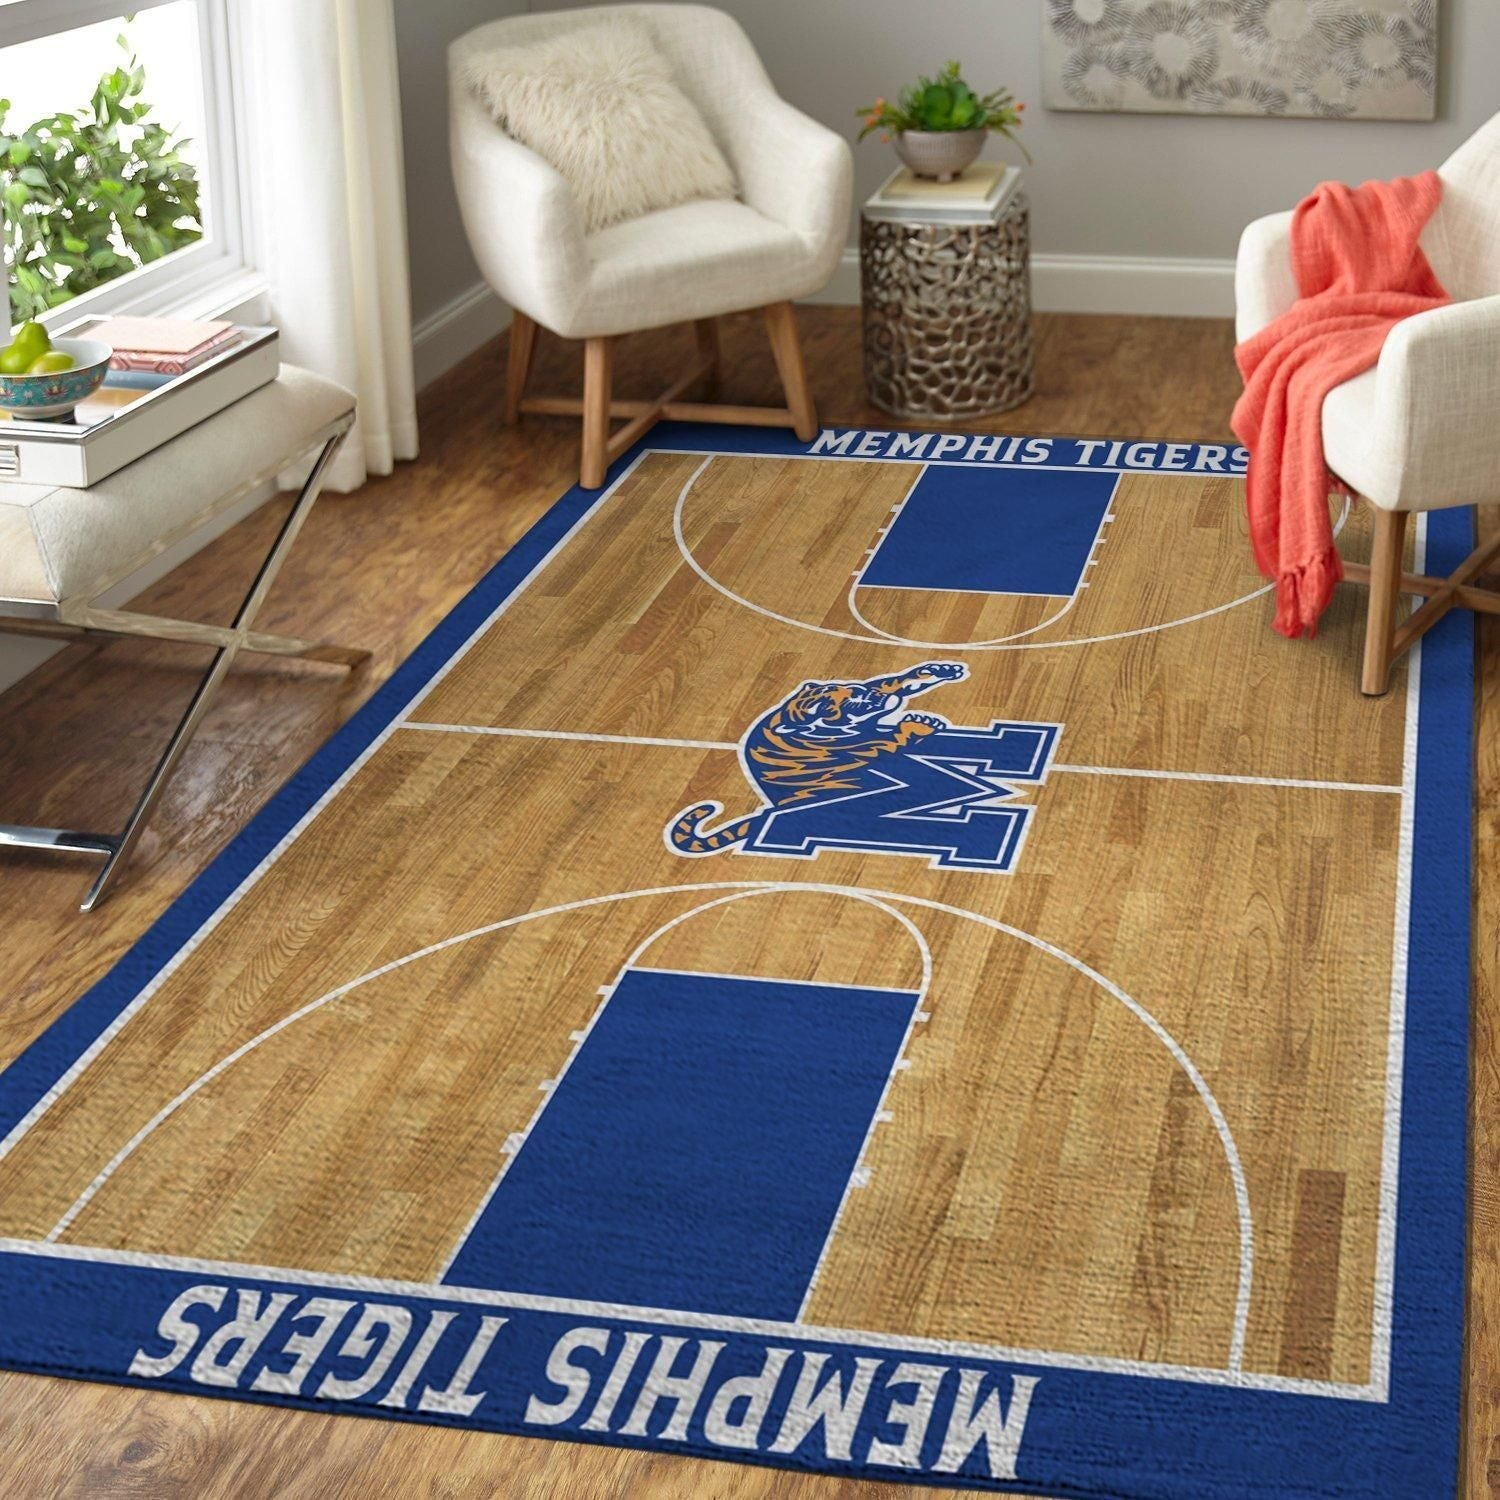 Memphis Tigers NCAA Basketball Area Rugs Living Room Carpet Sport Custom Floor Home Decor